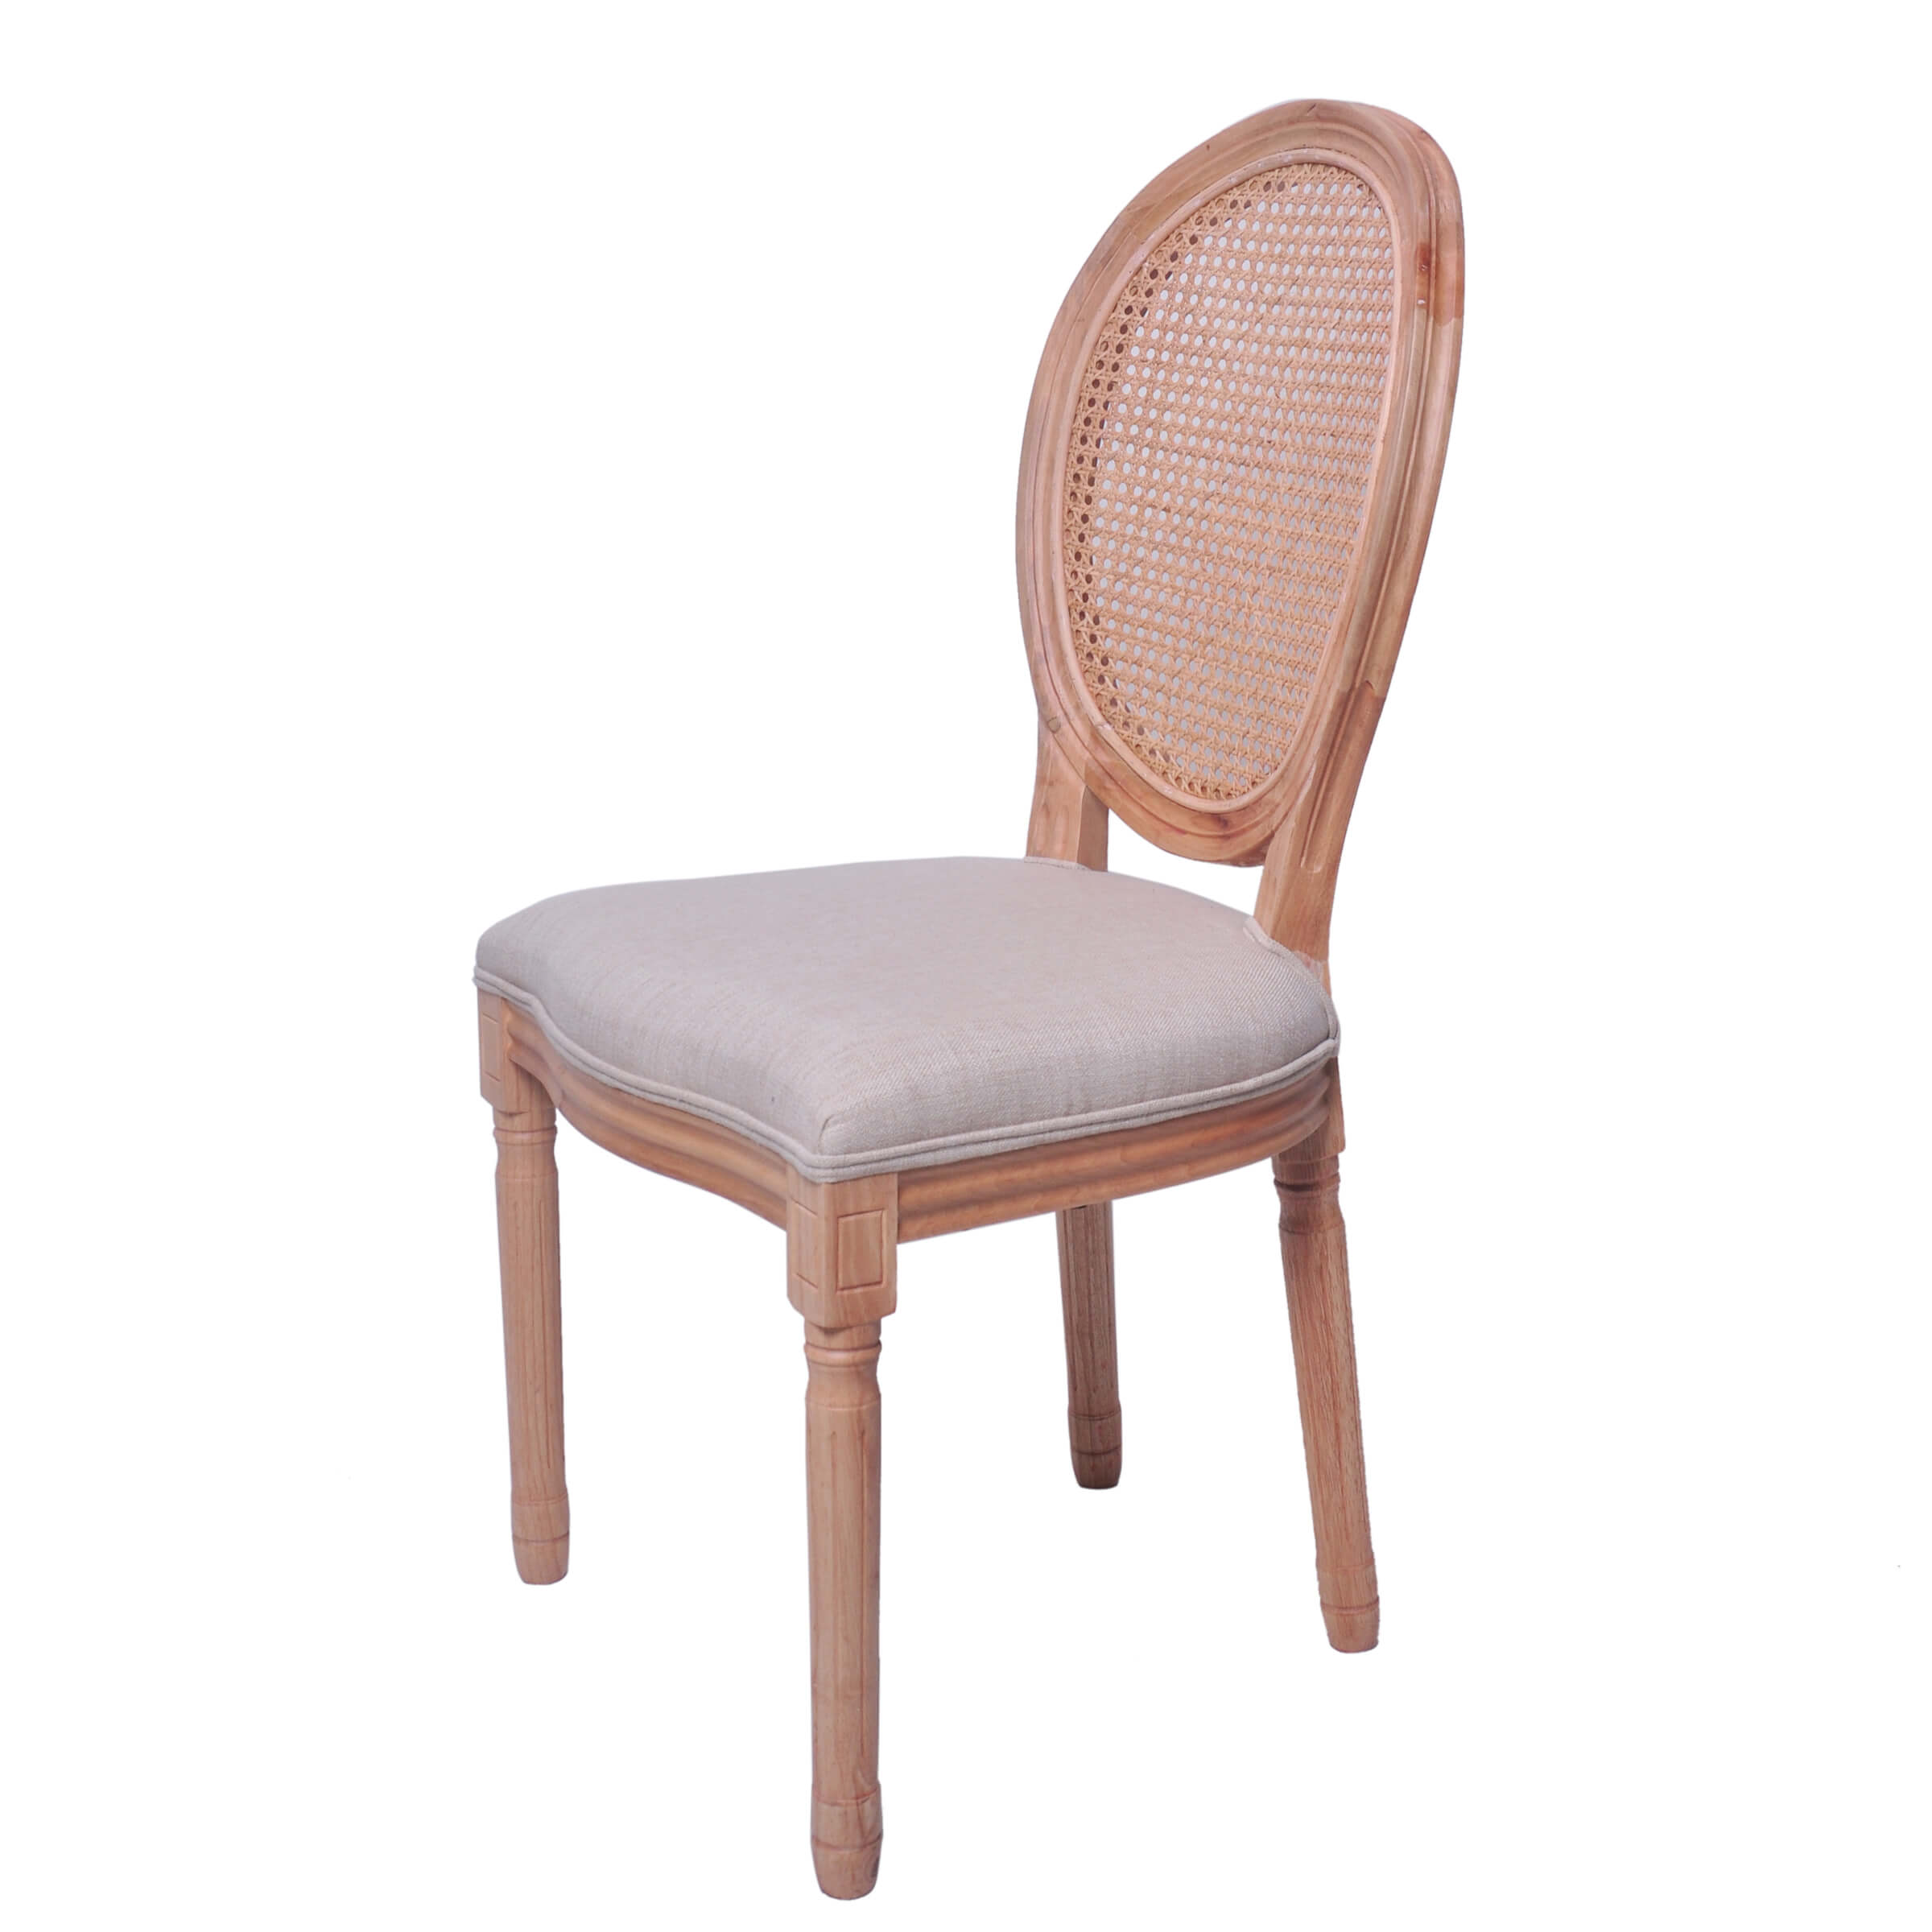 natural wooden louis chairs with rattan back